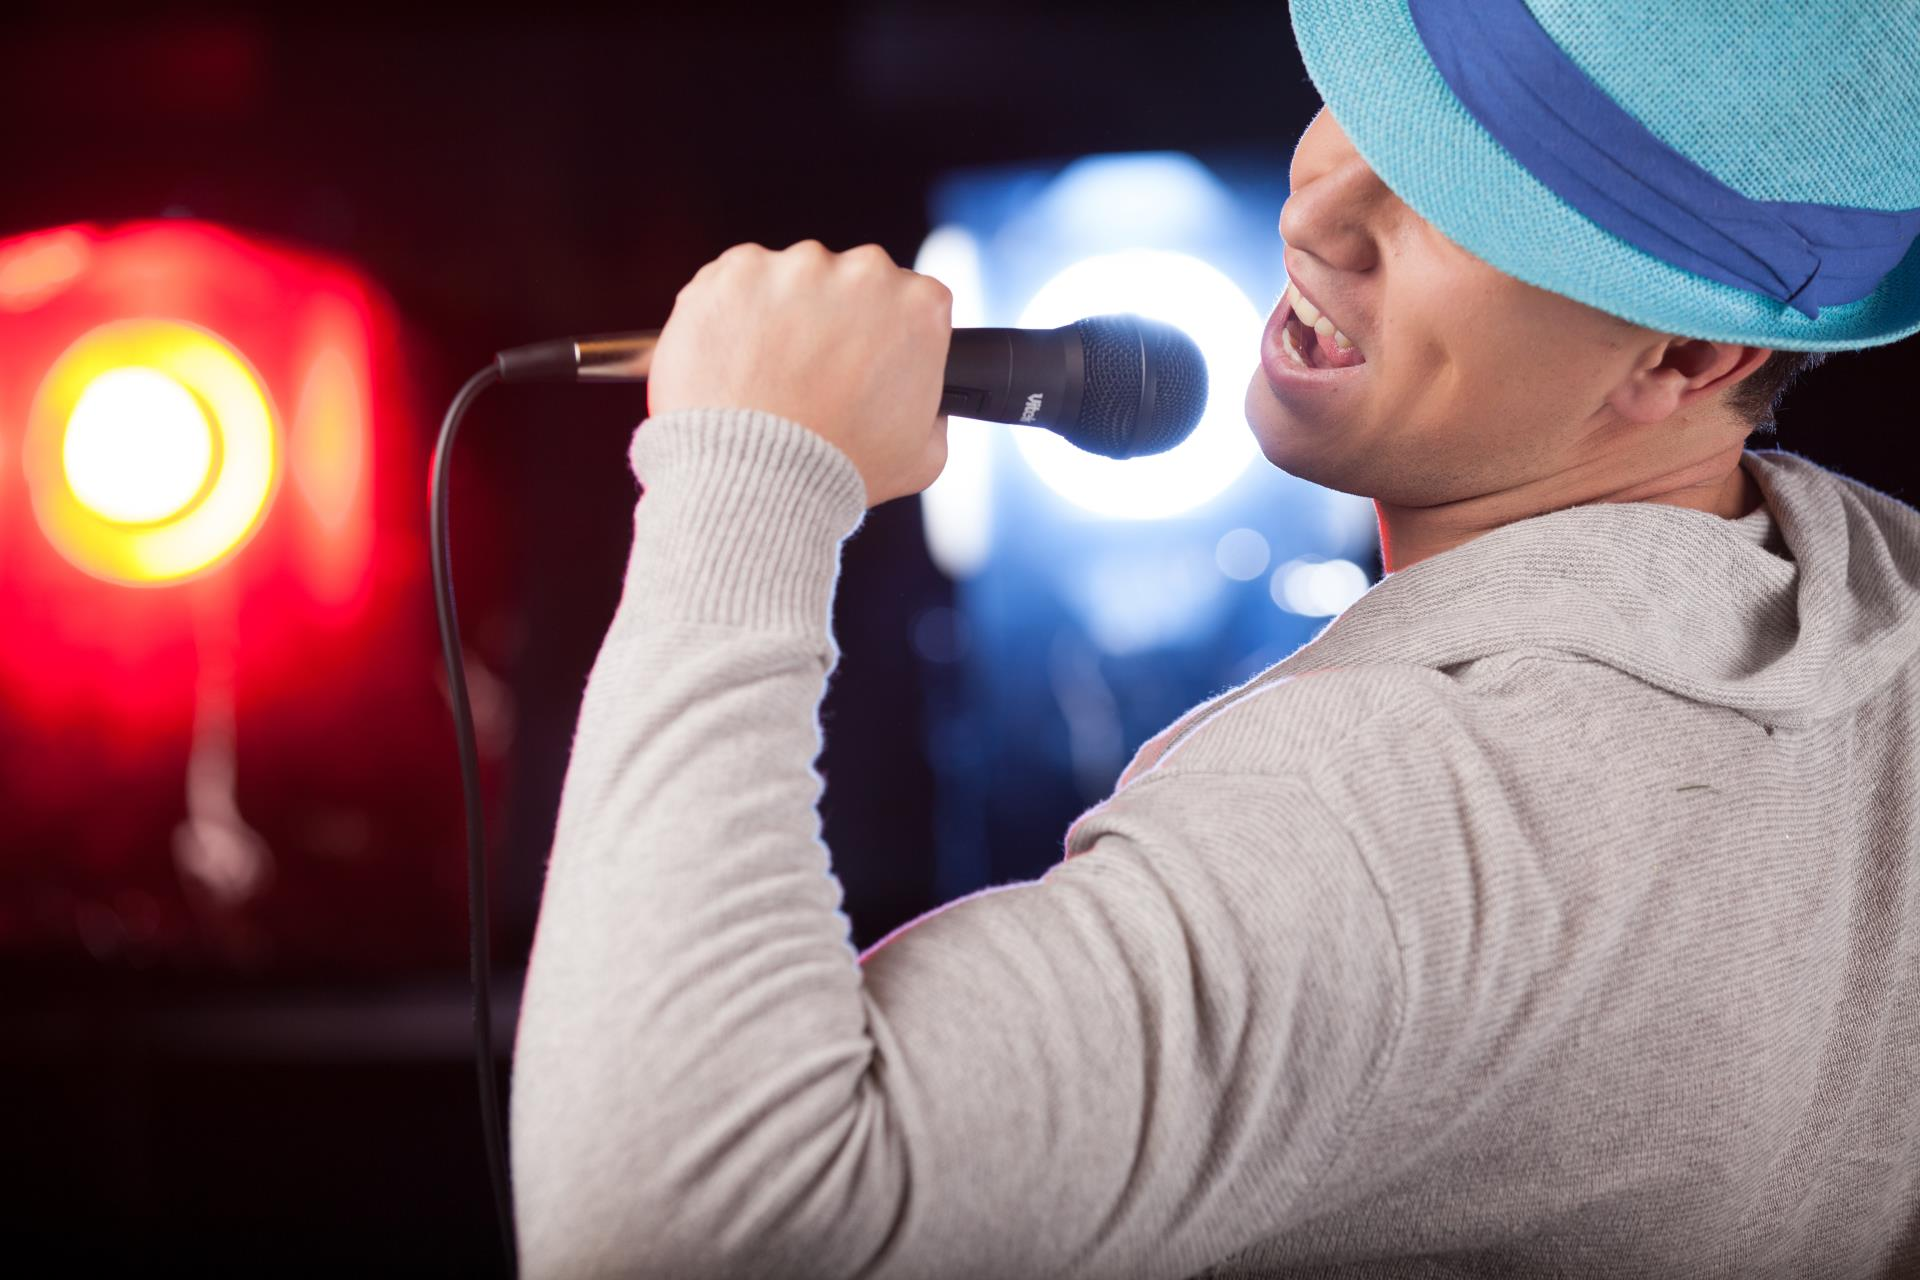 man singing into microphone with blue fedora